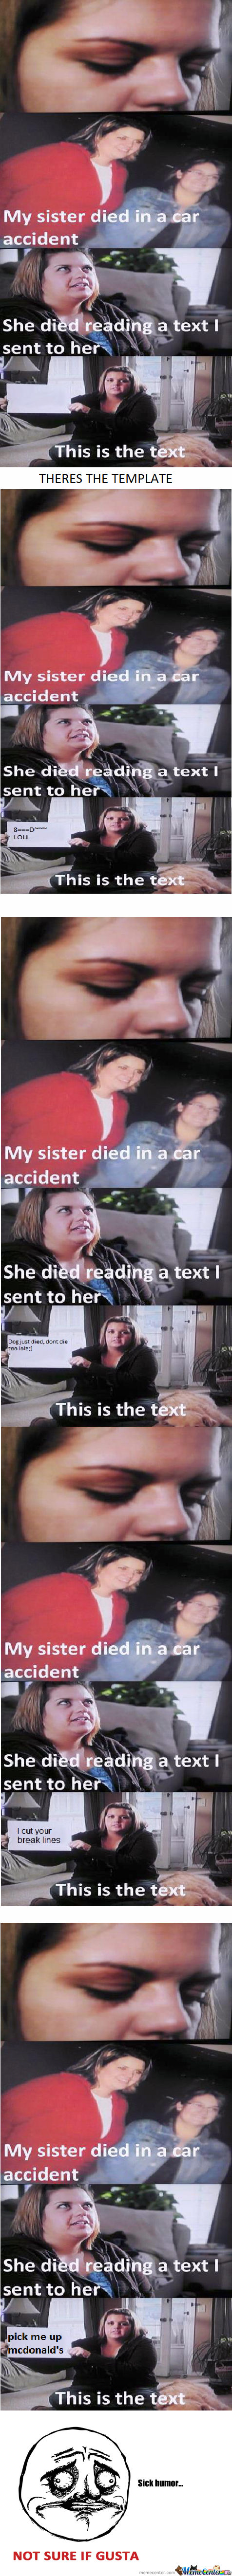 [RMX] Fat Girl Texts